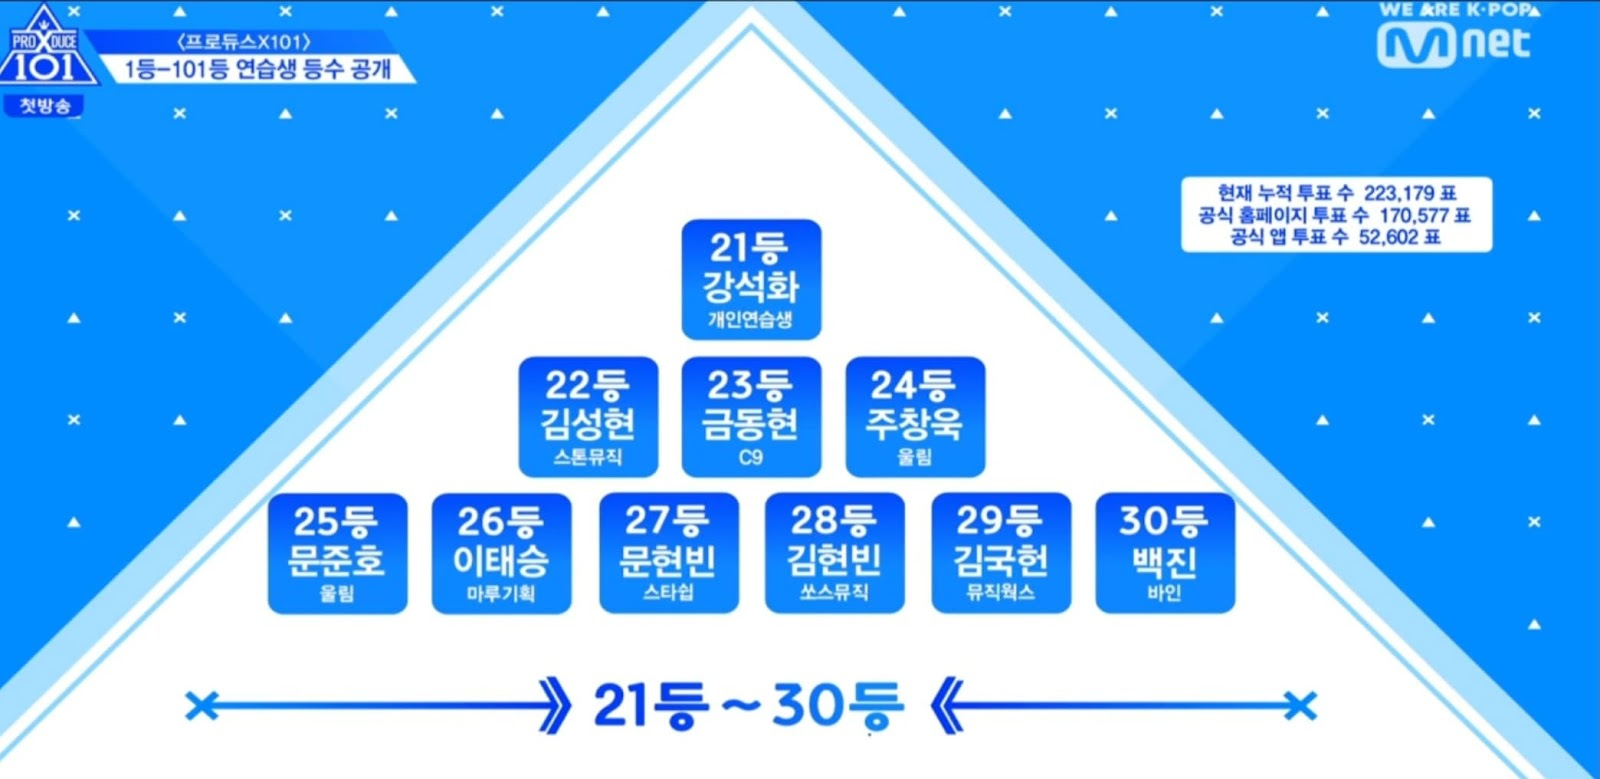 Here Are The TOP 30 Trainees After The First Episode Of